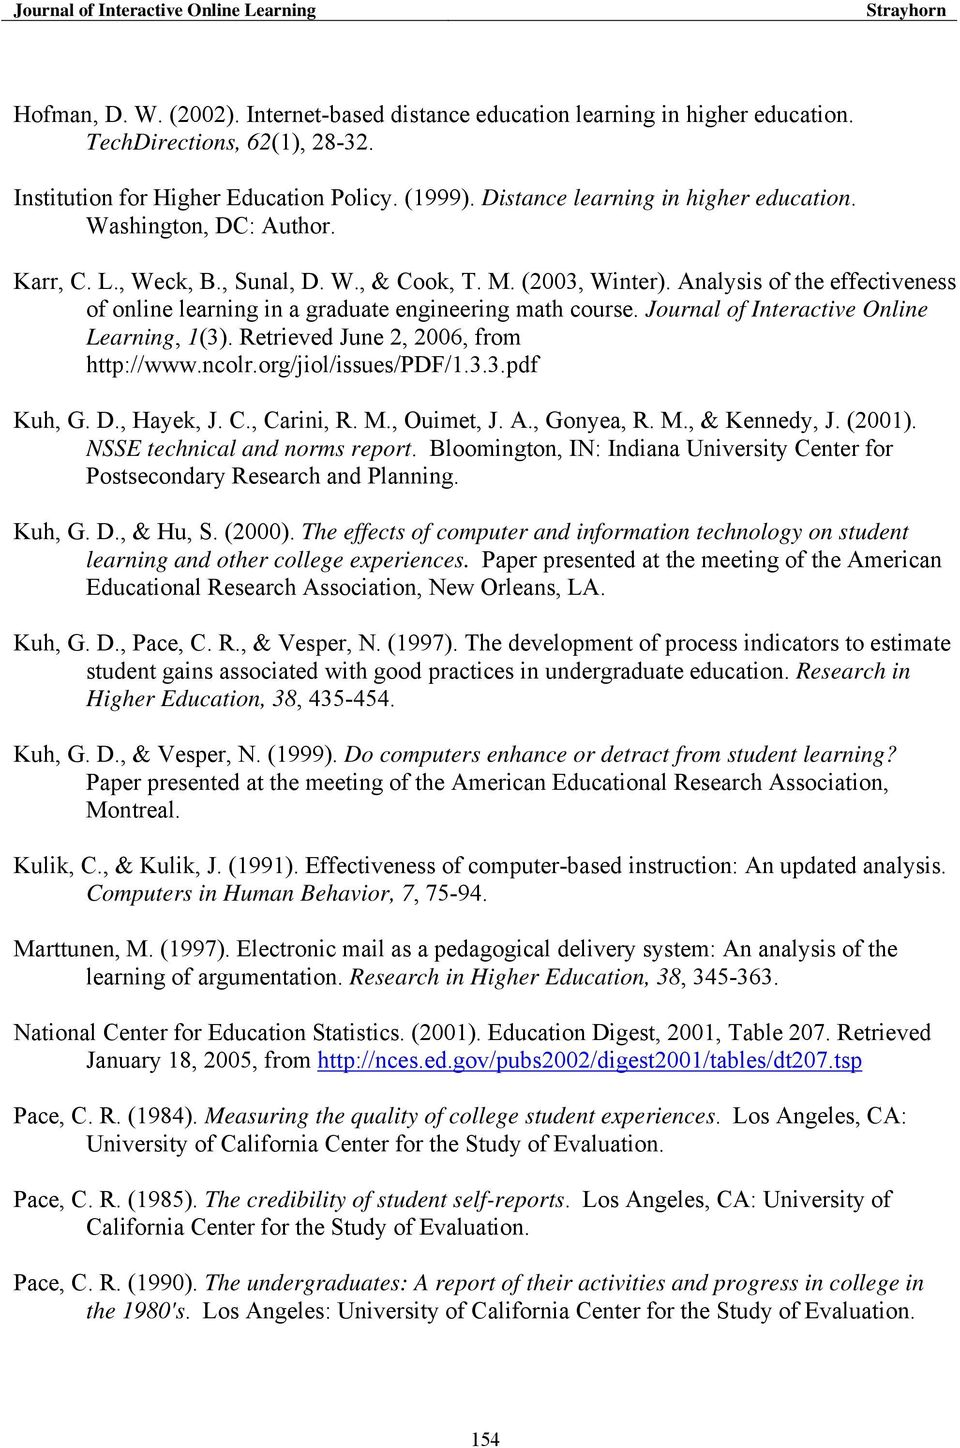 Analysis of the effectiveness of online learning in a graduate engineering math course. Journal of Interactive Online Learning, 1(3). Retrieved June 2, 2006, from http://www.ncolr.